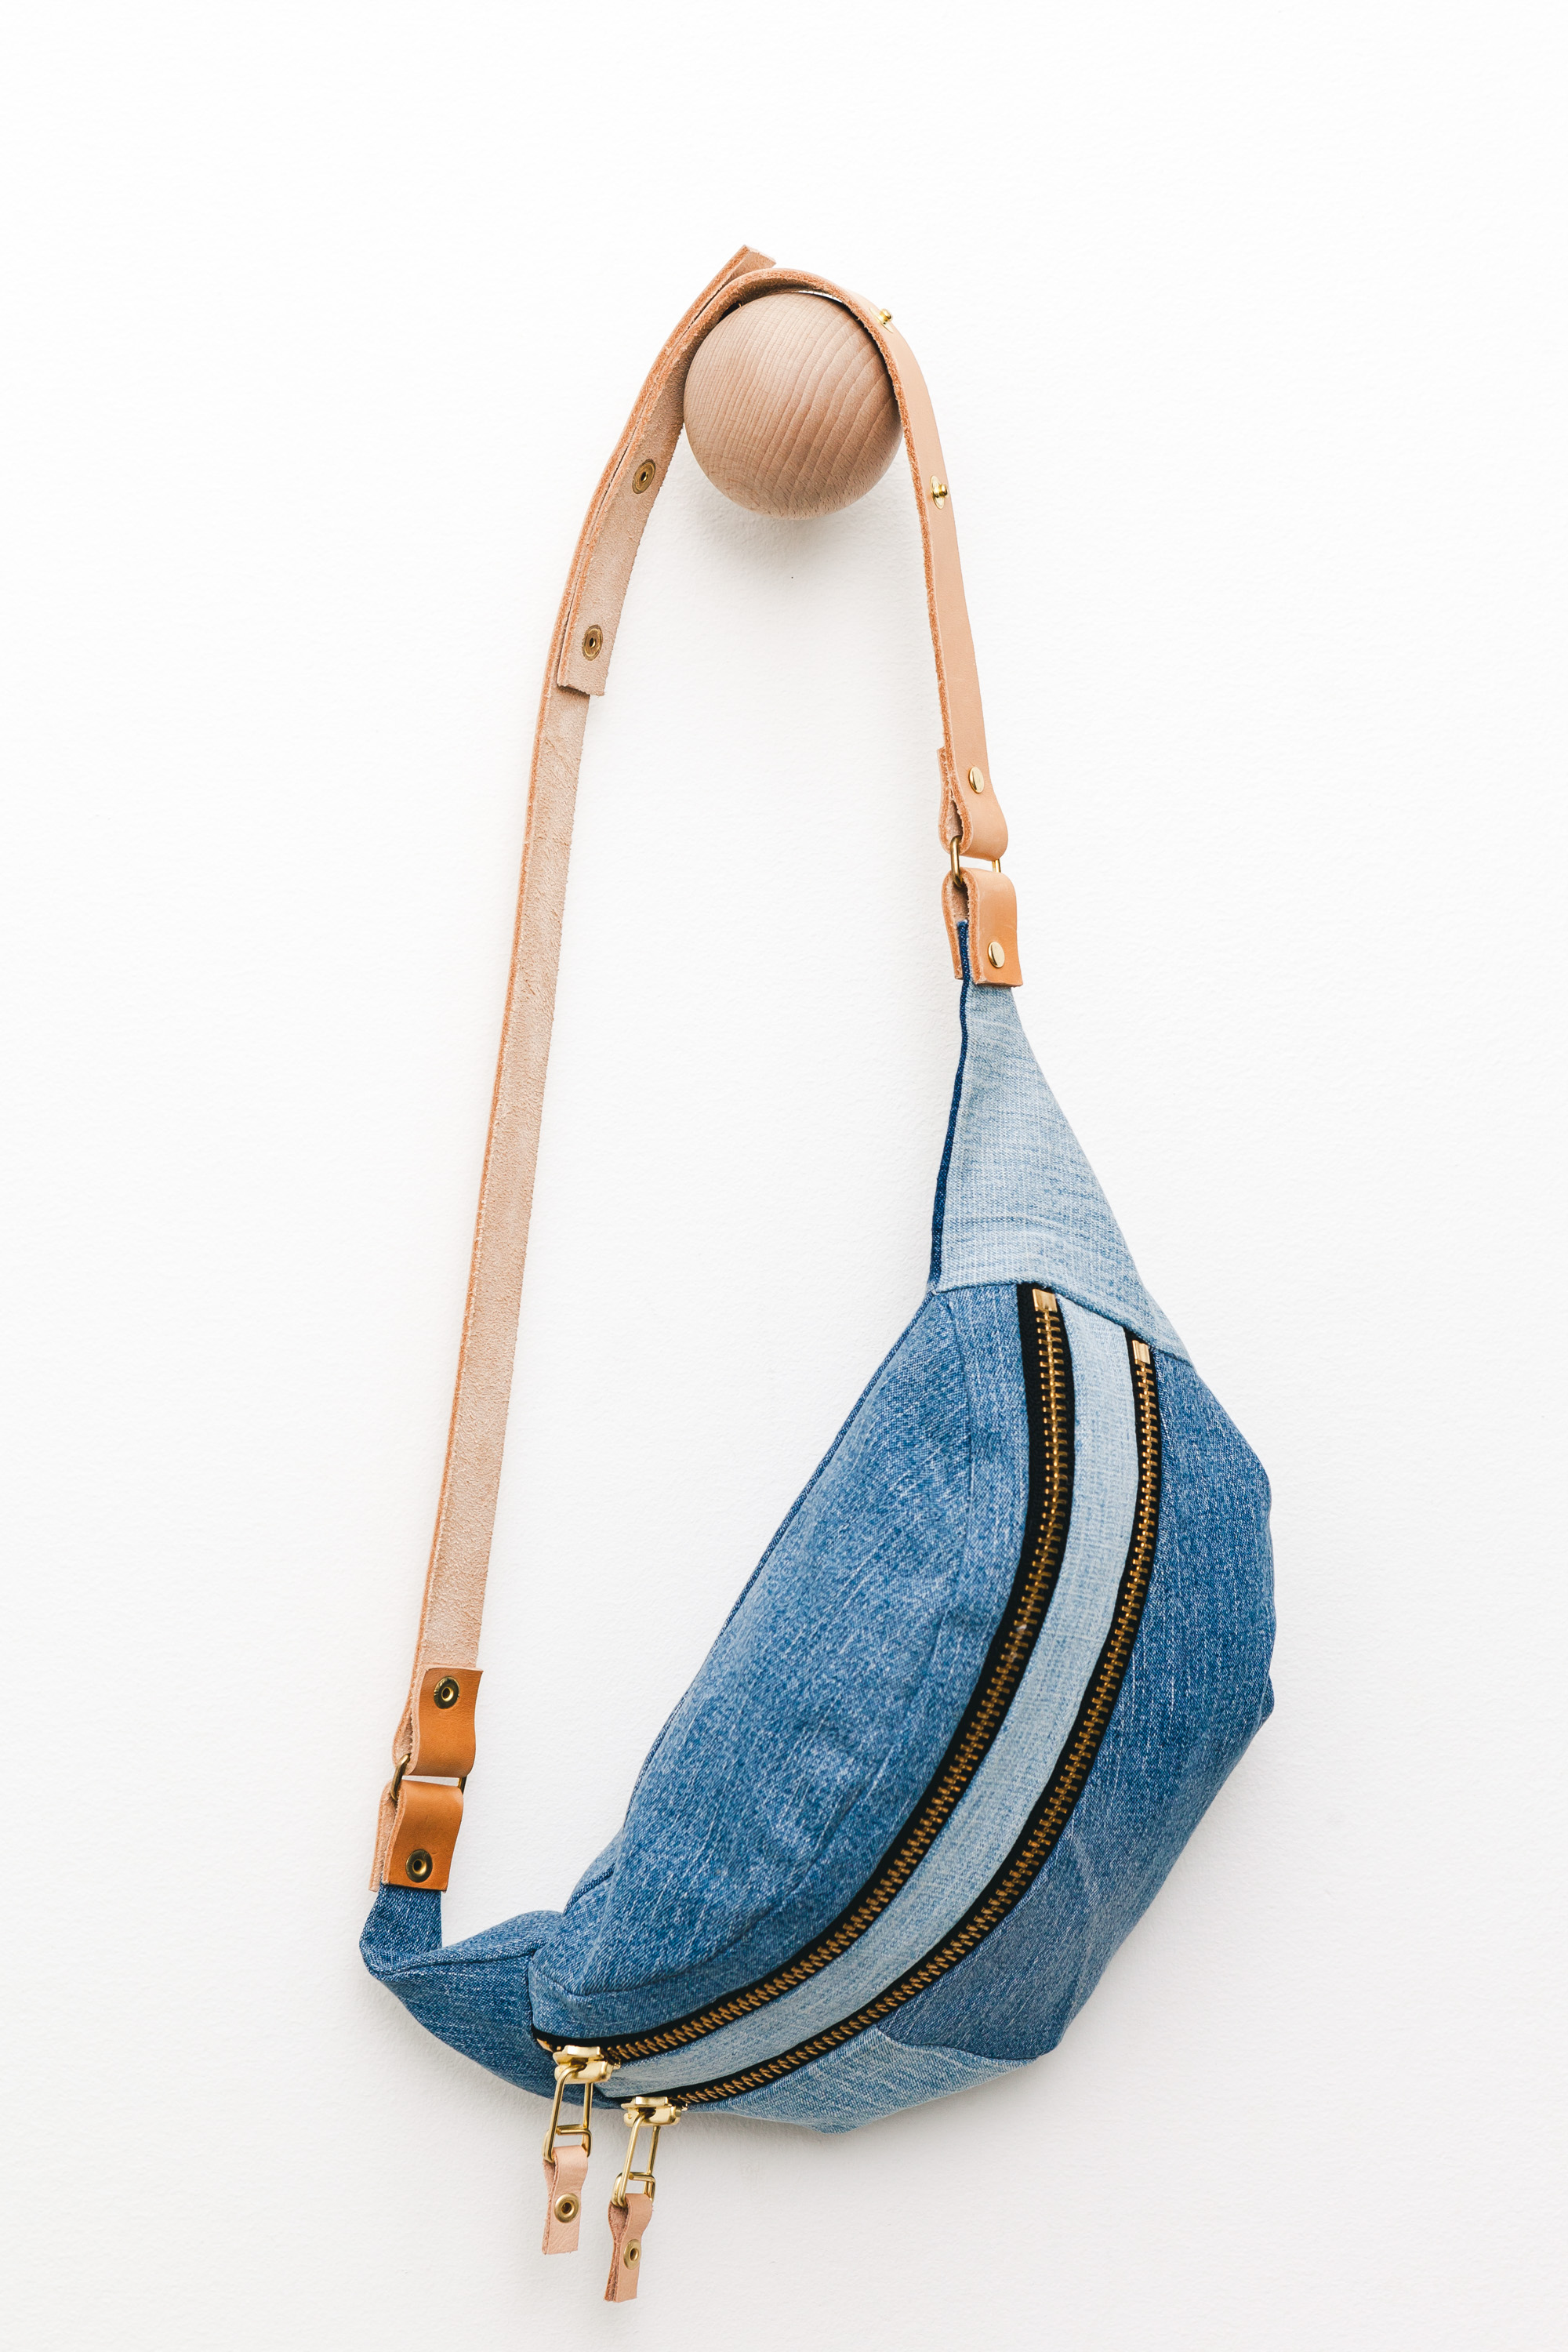 Naked Society - denim bum bag 38x16cm, Denmark